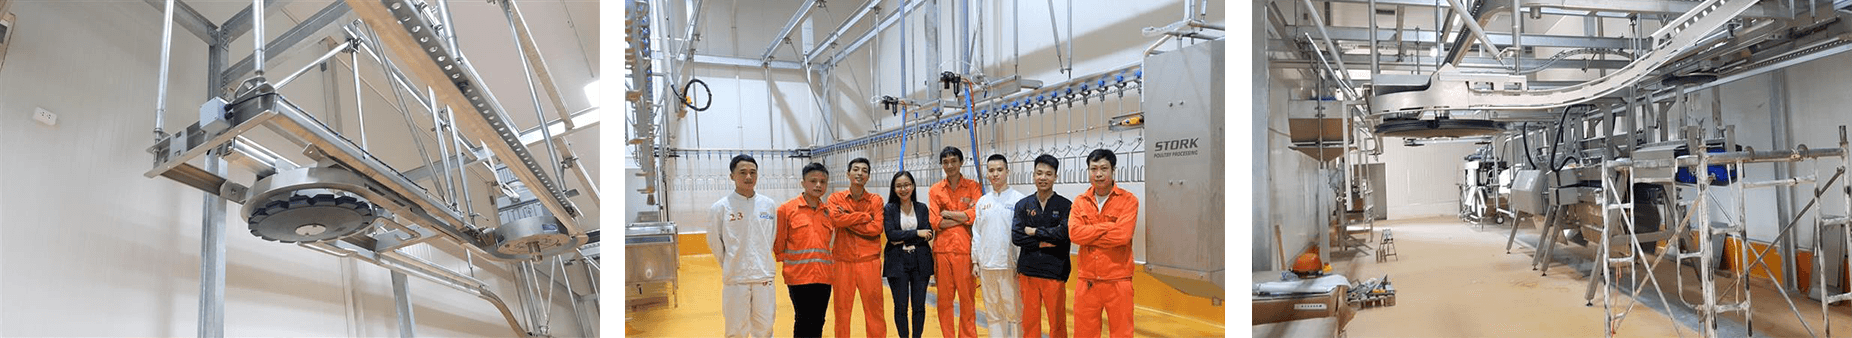 Agricultural Engineering Project for De Heus in Vietnam delivered by IntES